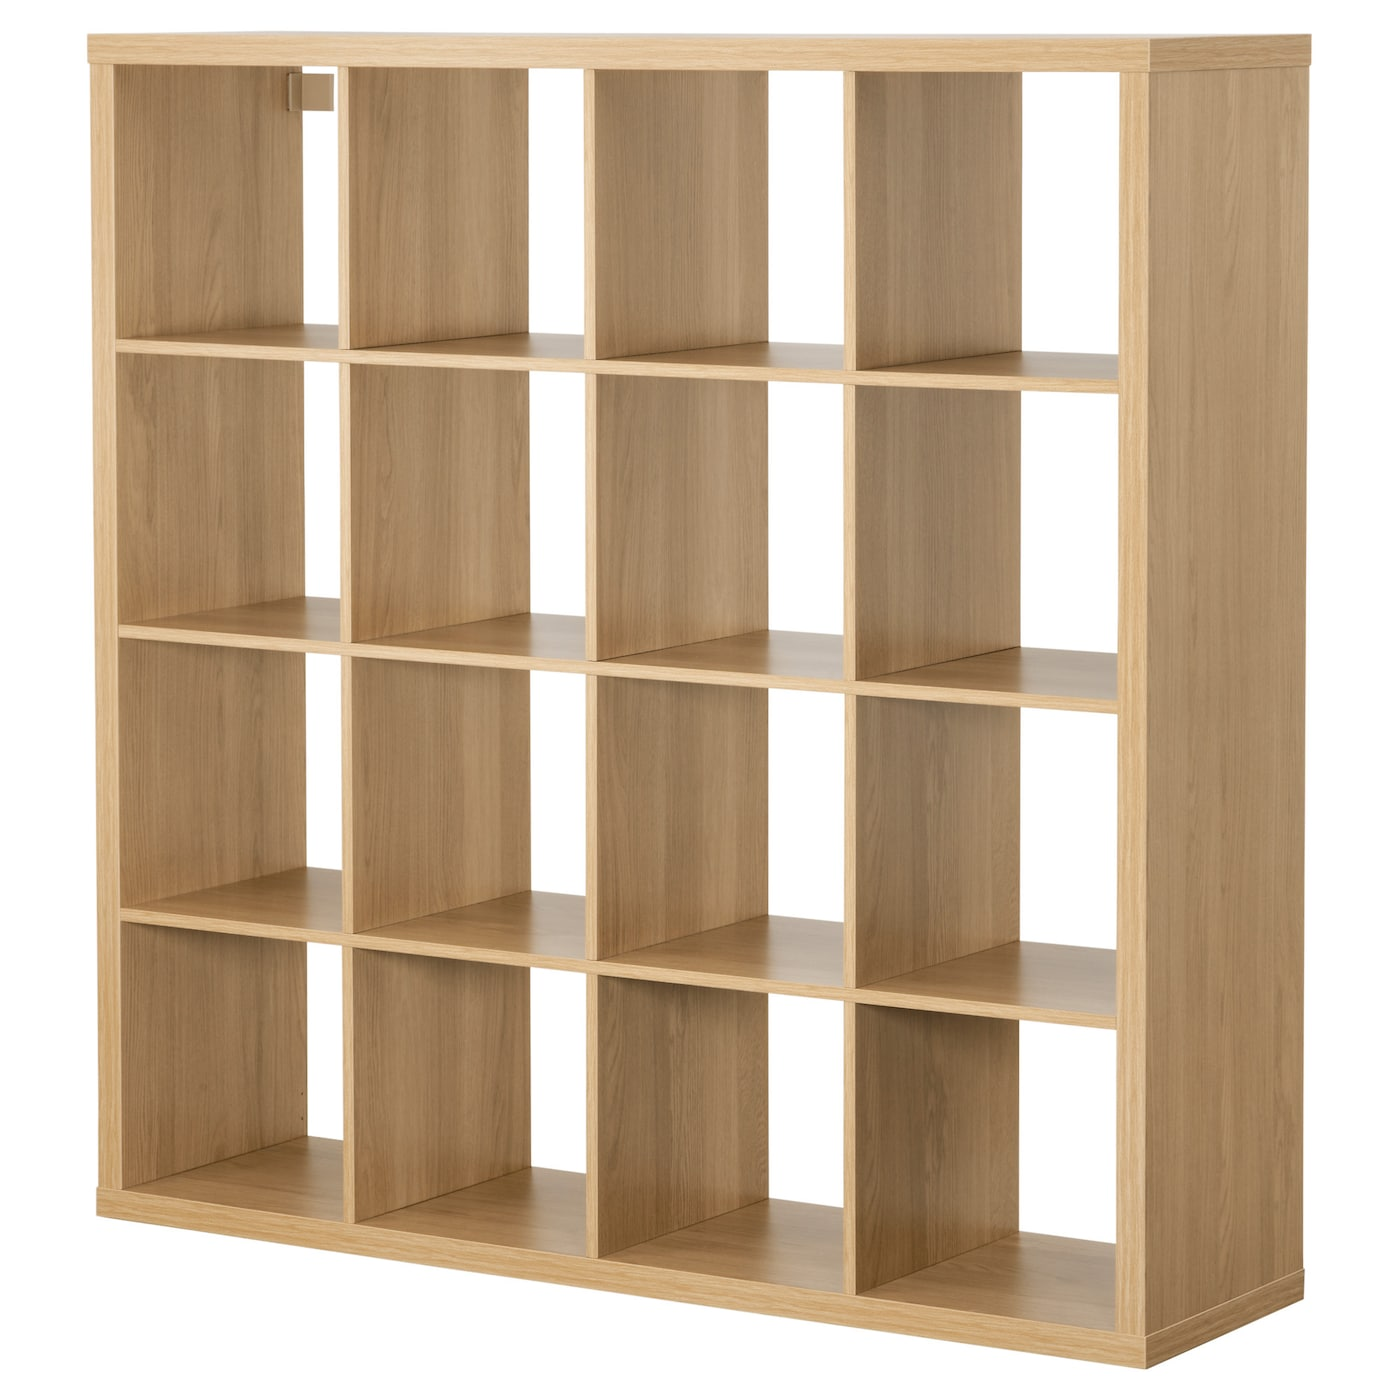 kallax shelving unit oak effect 147 x 147 cm - ikea